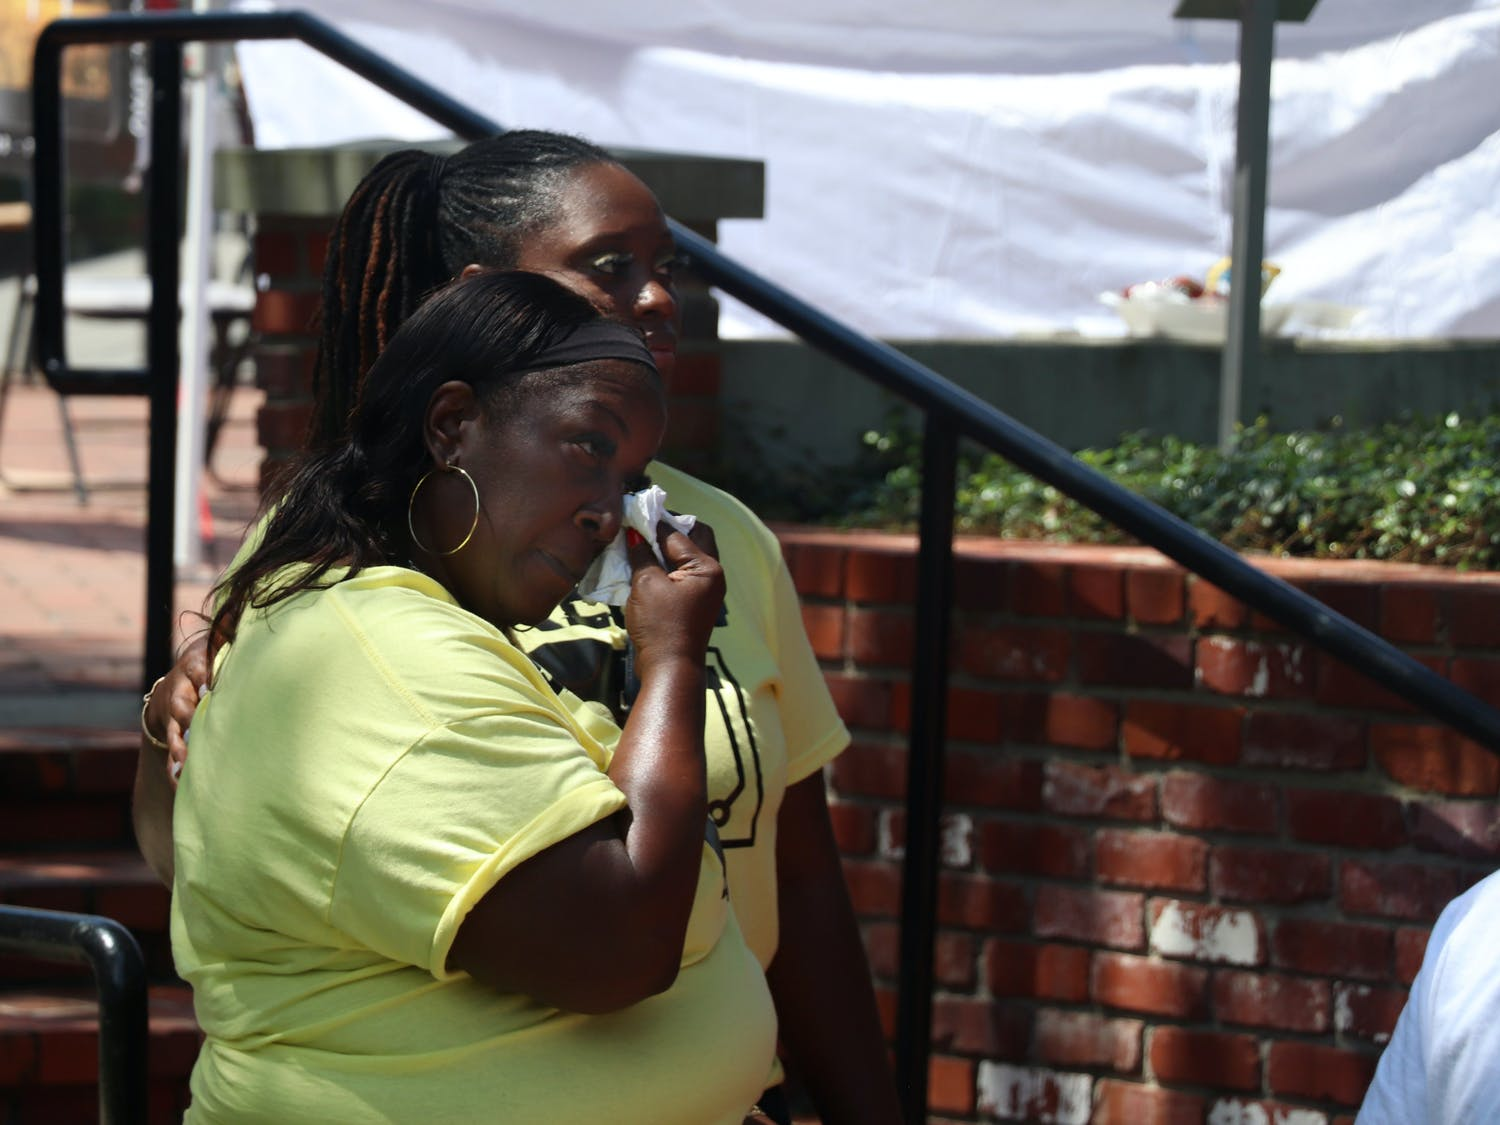 The family and friends of Akeem Thompson, better known as DJ Terrah from 98.9 Jamz, came together at Bo Diddley Plaza on Sept. 4, 2021, to honor his life after he died of COVID-19. Local DJs played music, local pastors prayed, officials designated a day in Thompson's honor and free COVID-19 tests were offered onsite.